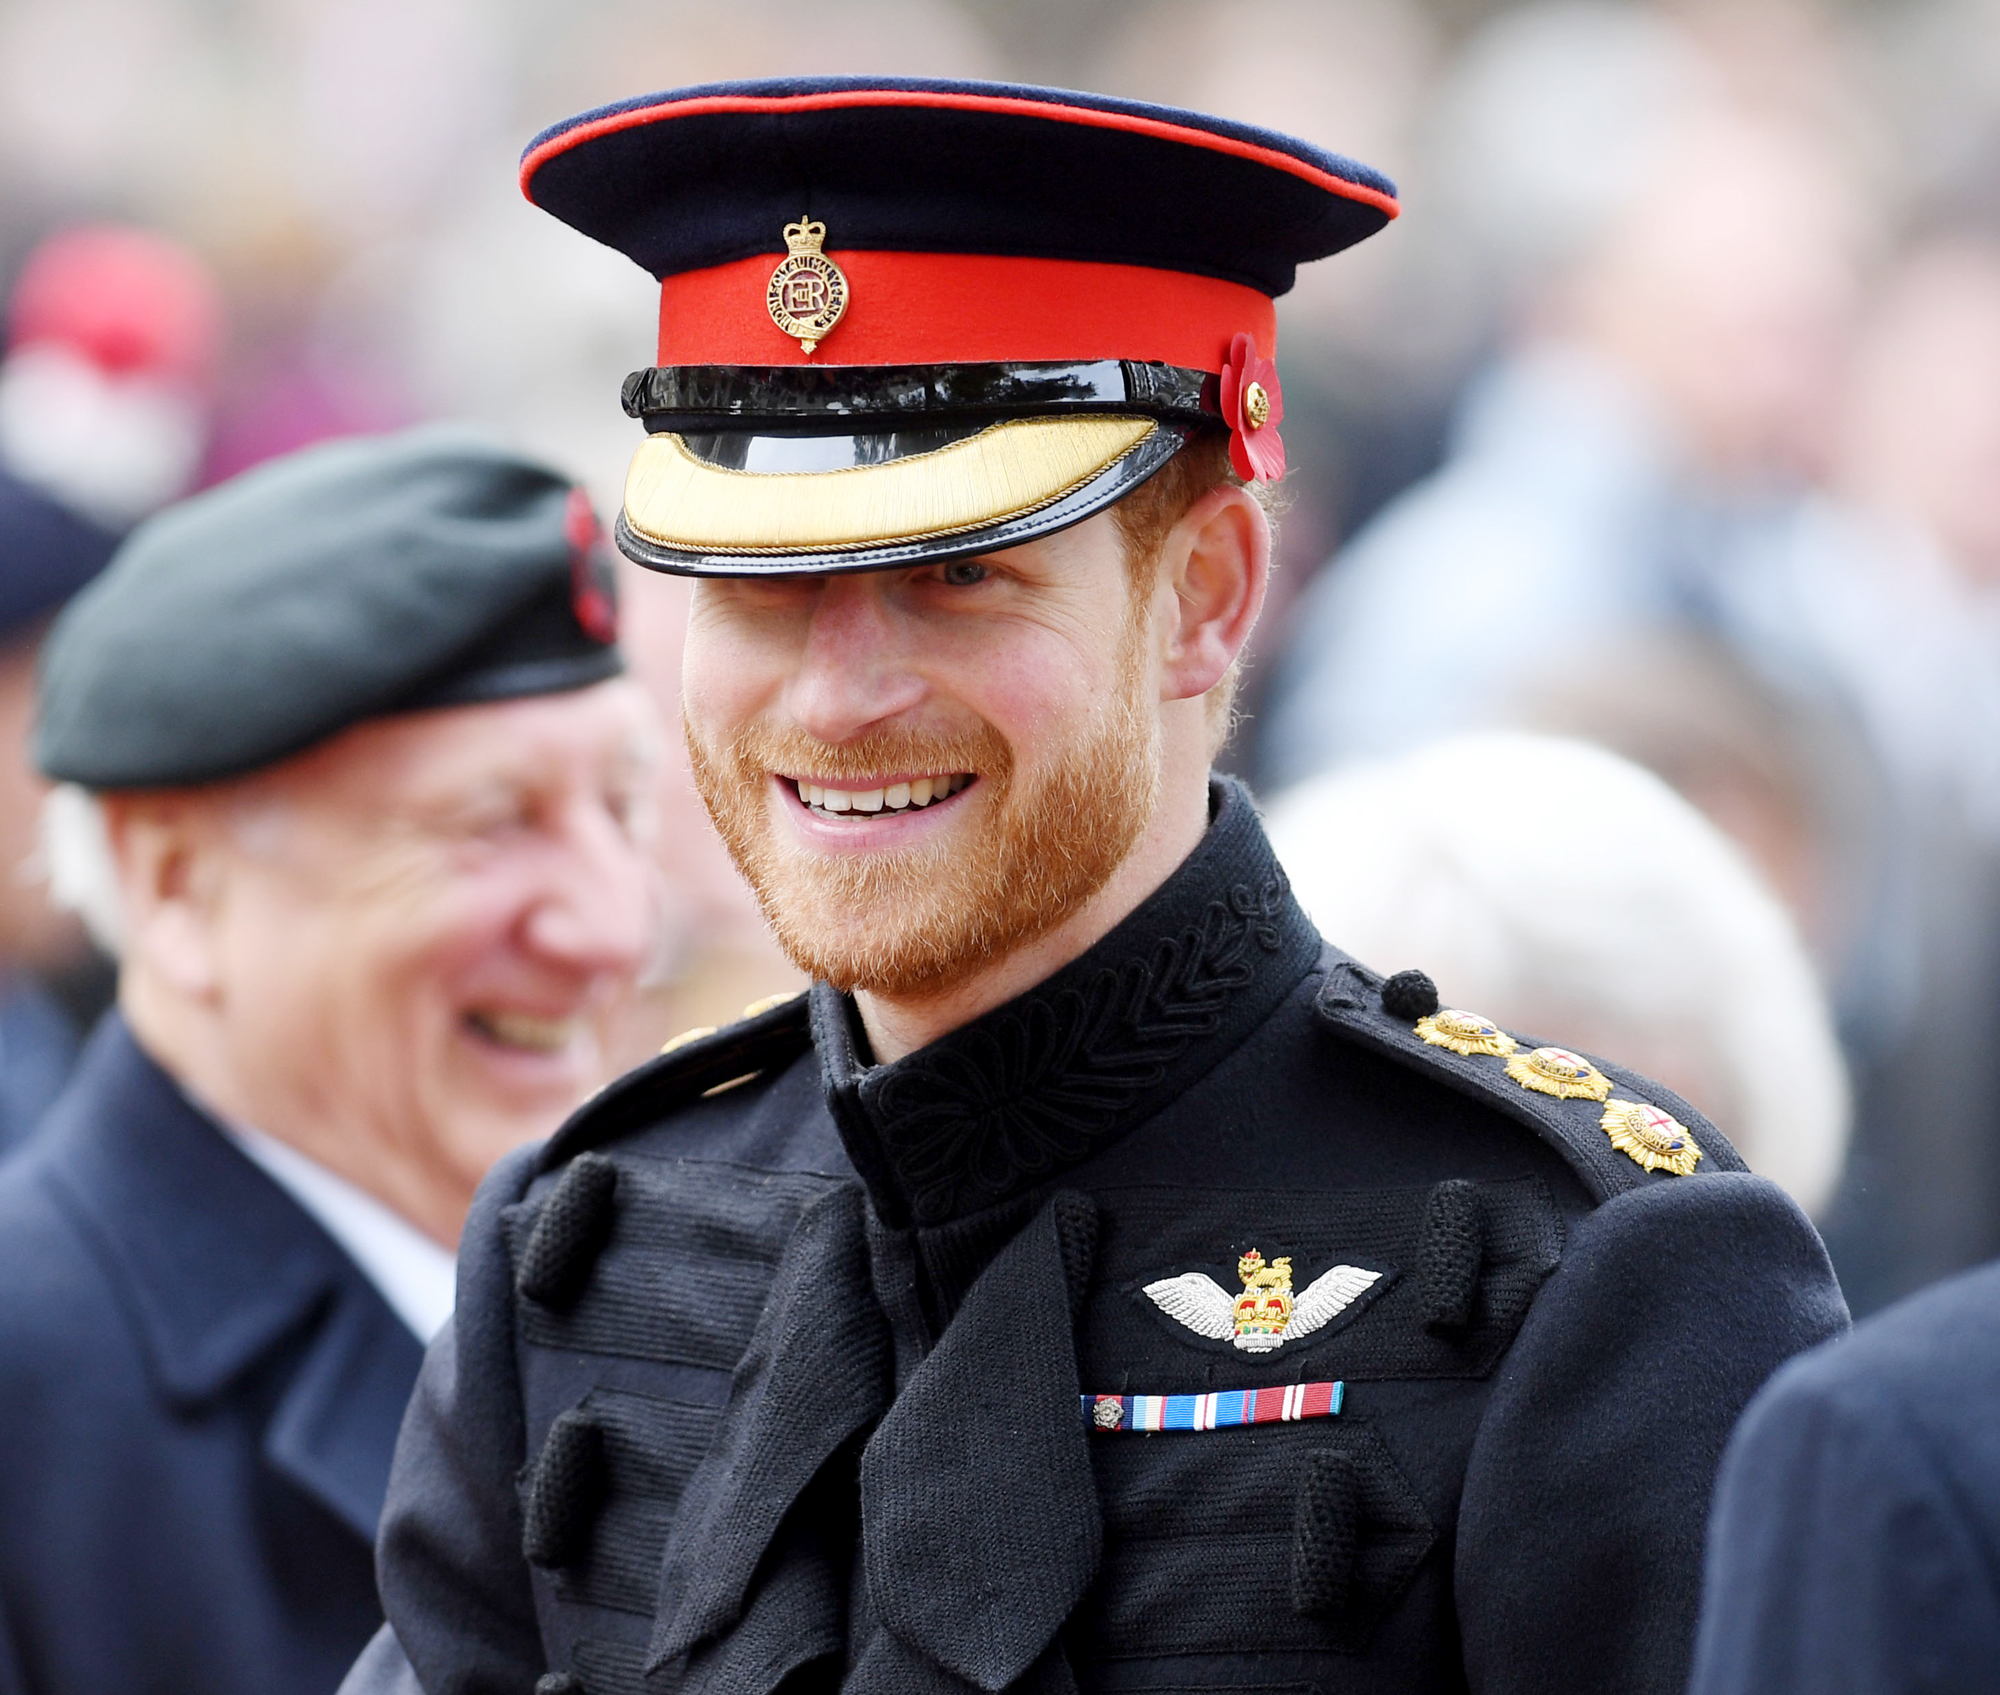 When Asked About Meghan Markle, Prince Harry Cracked a Joke